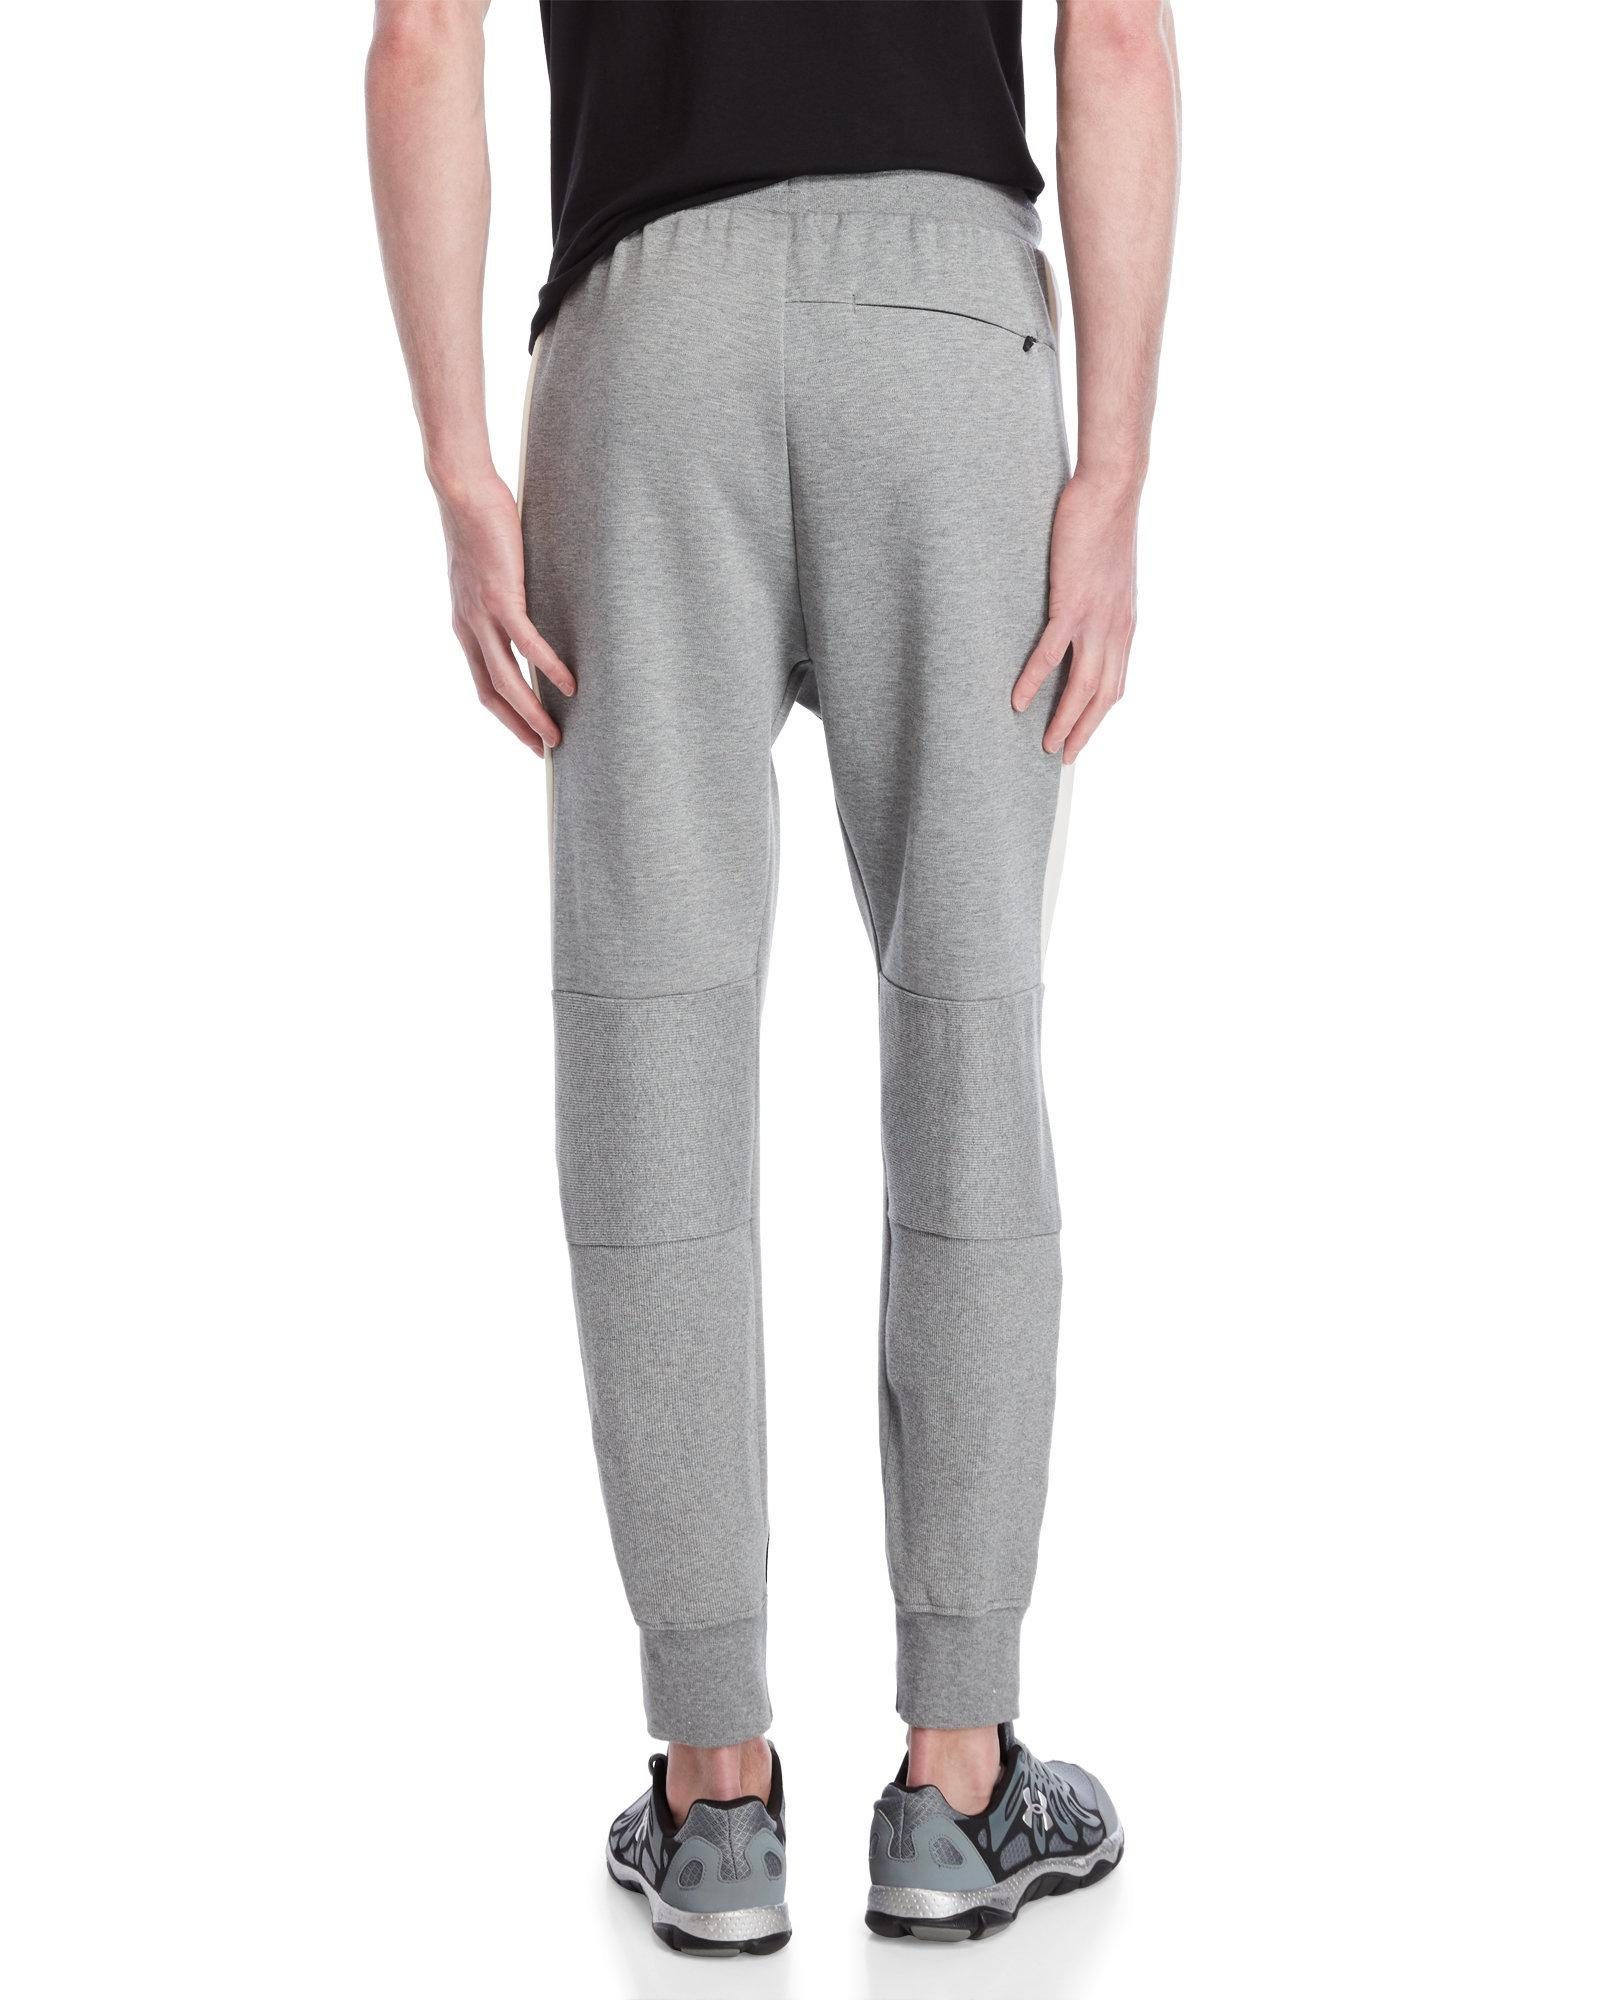 Lyst - Puma Evo T7 Track Pants in Gray for Men bed2c60472d32